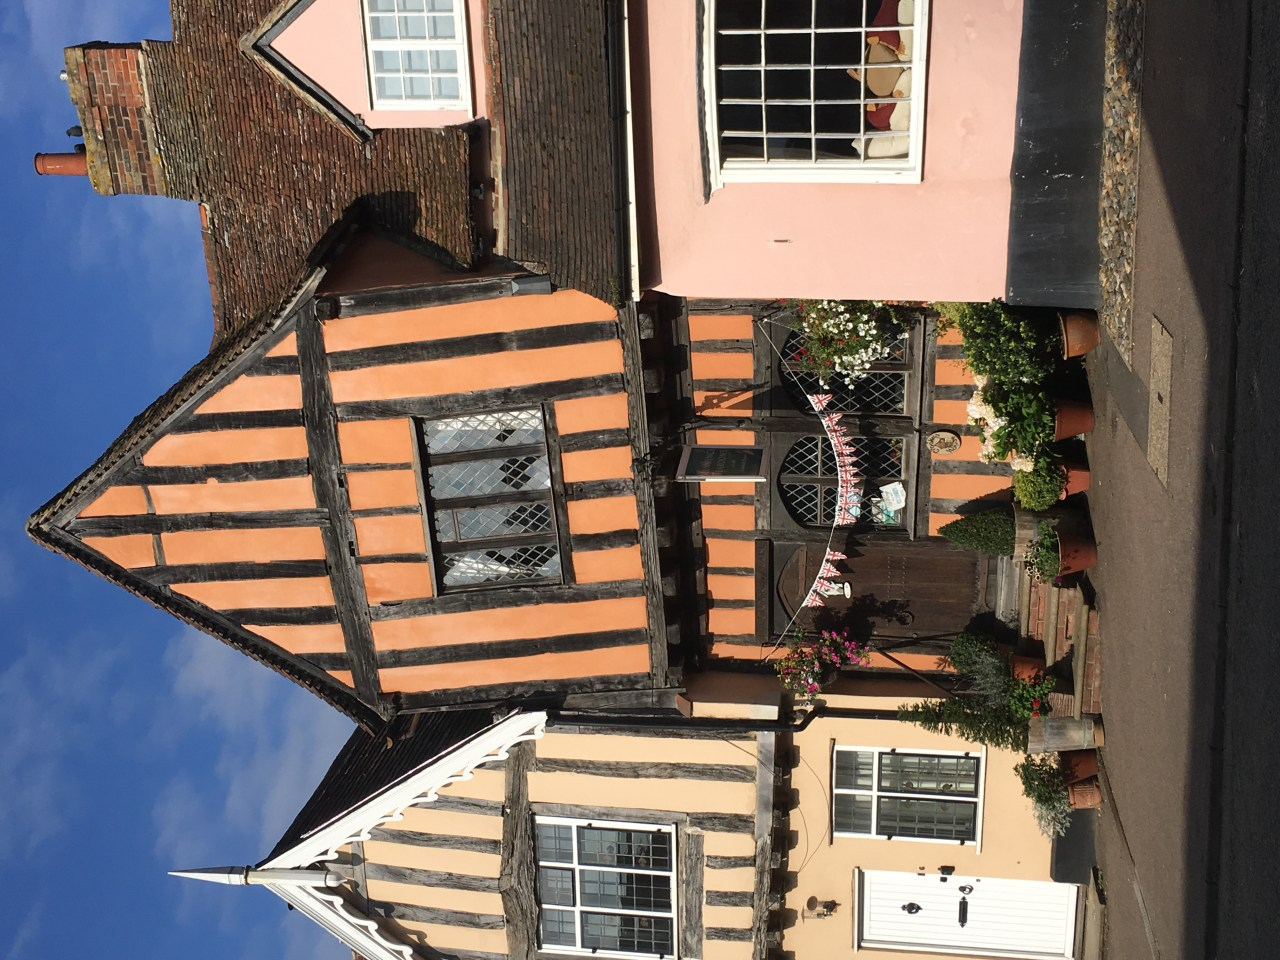 The Swan Inn at Lavenham